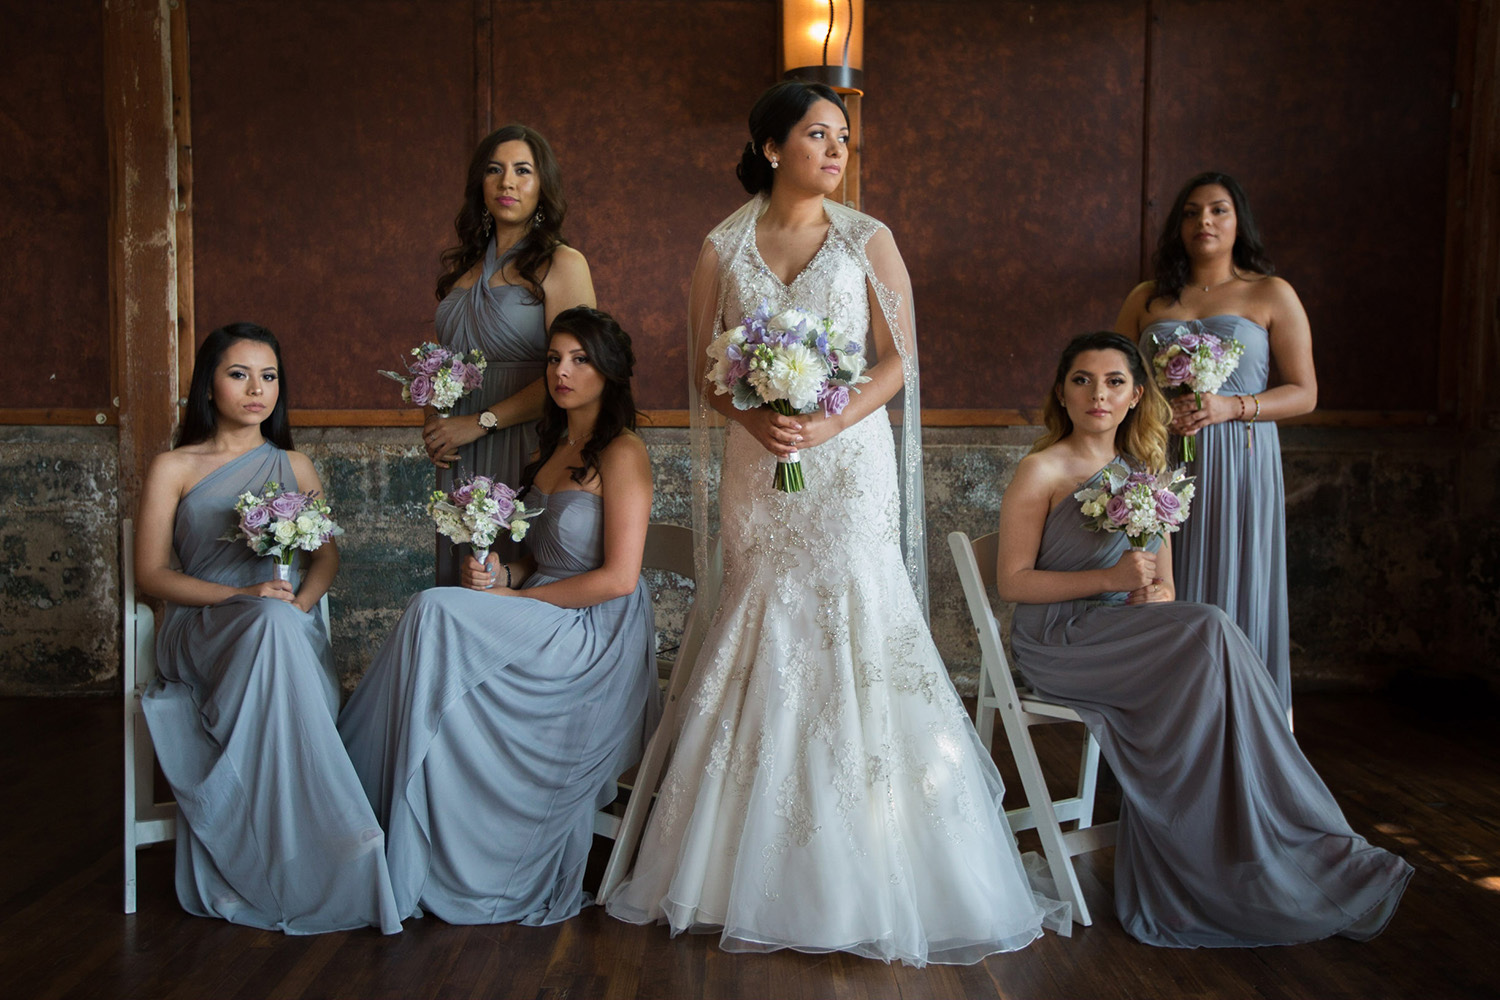 bride-bridesmaids-cotton-mill.jpg